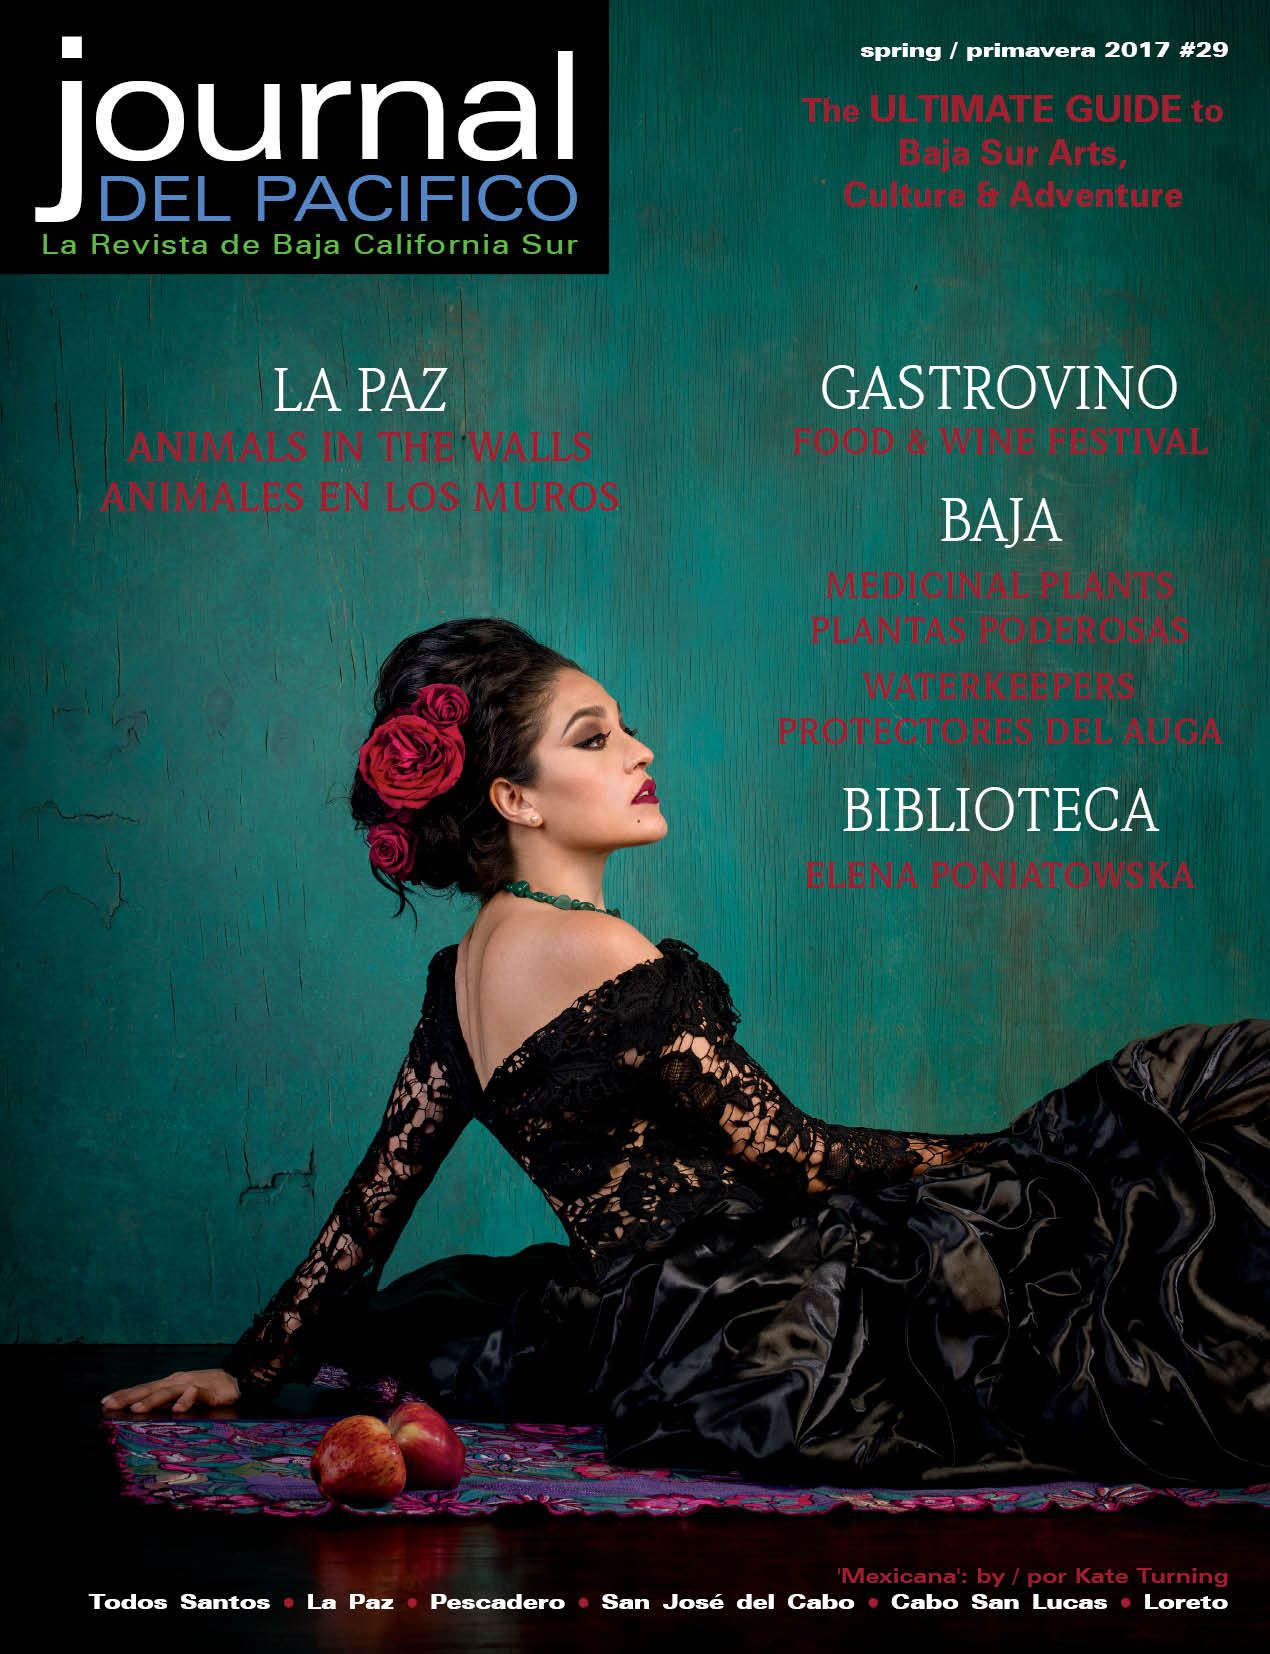 Spring 2017 Issue of Journal del Pacifico